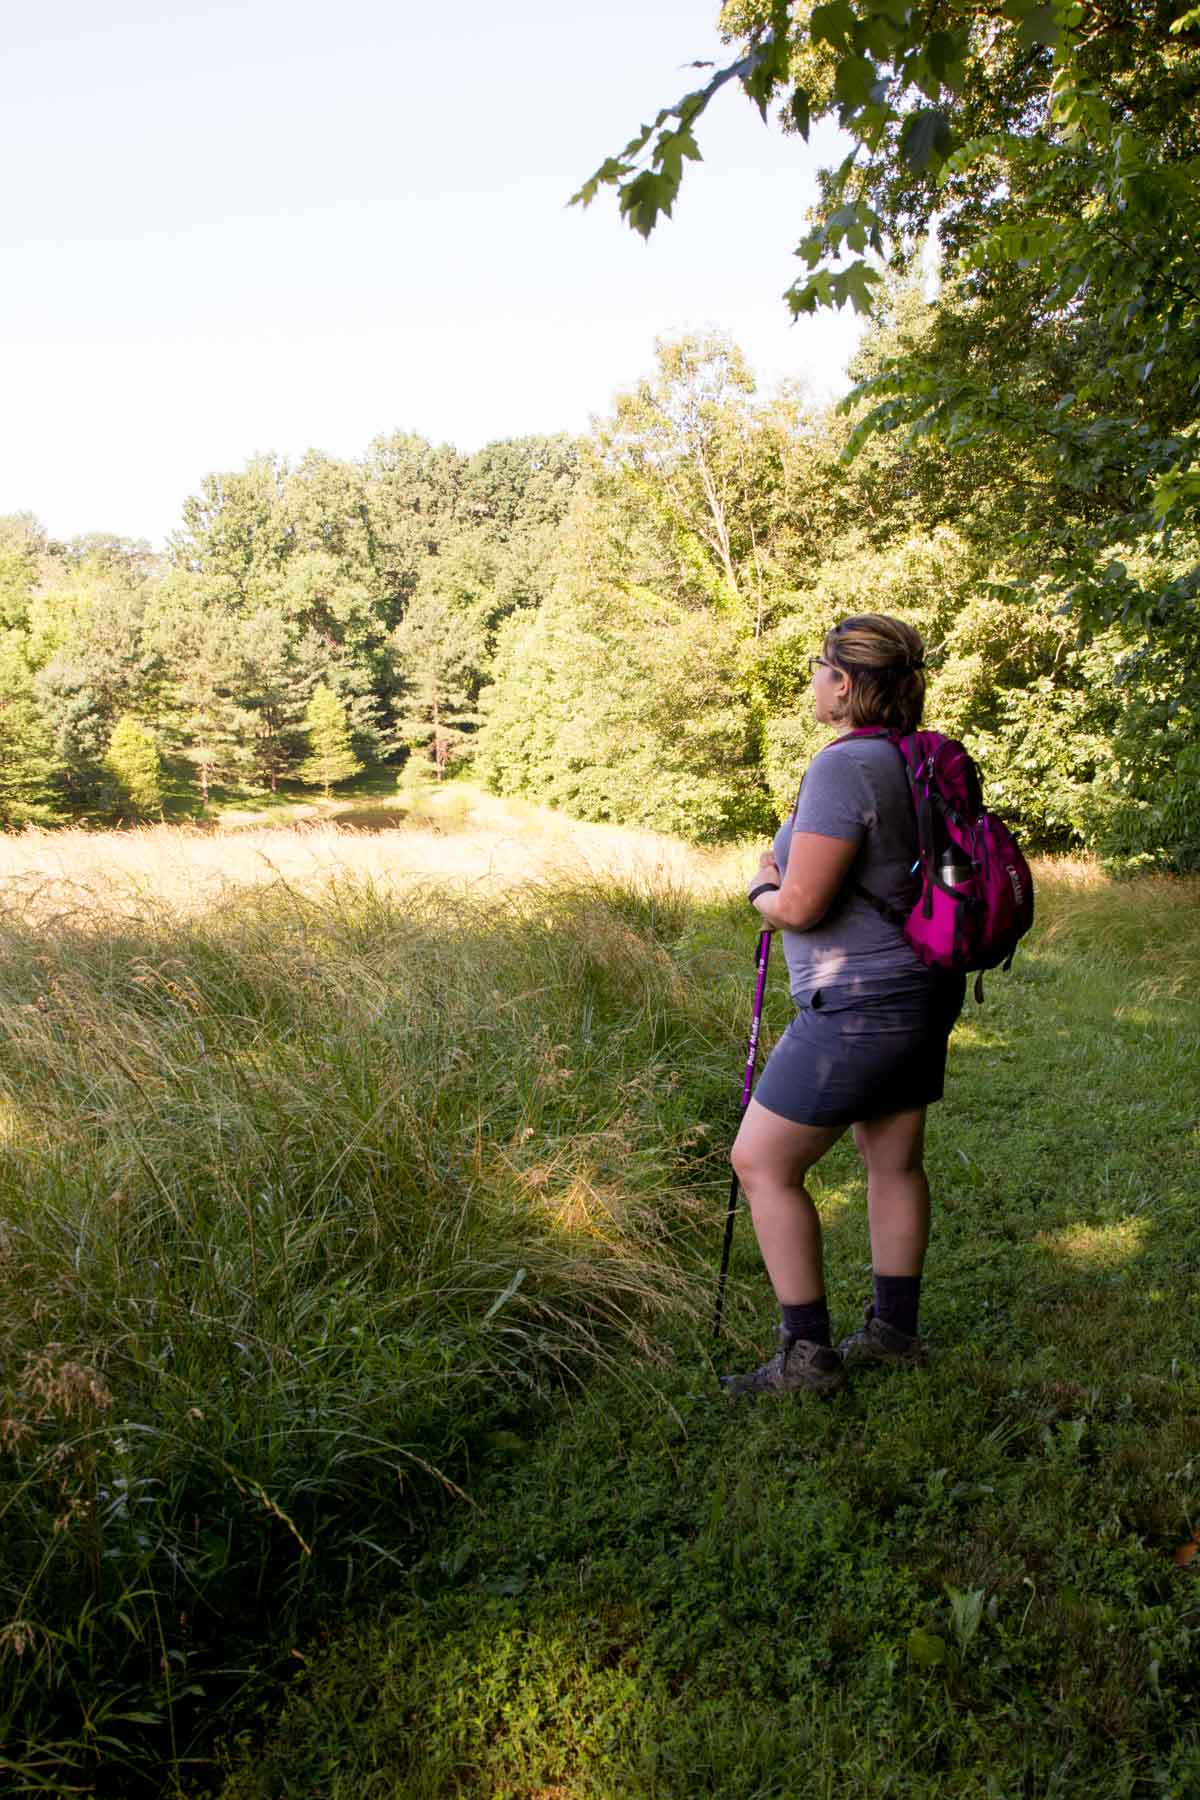 Brunette woman in hiking gear and a backpack, looking over a field.